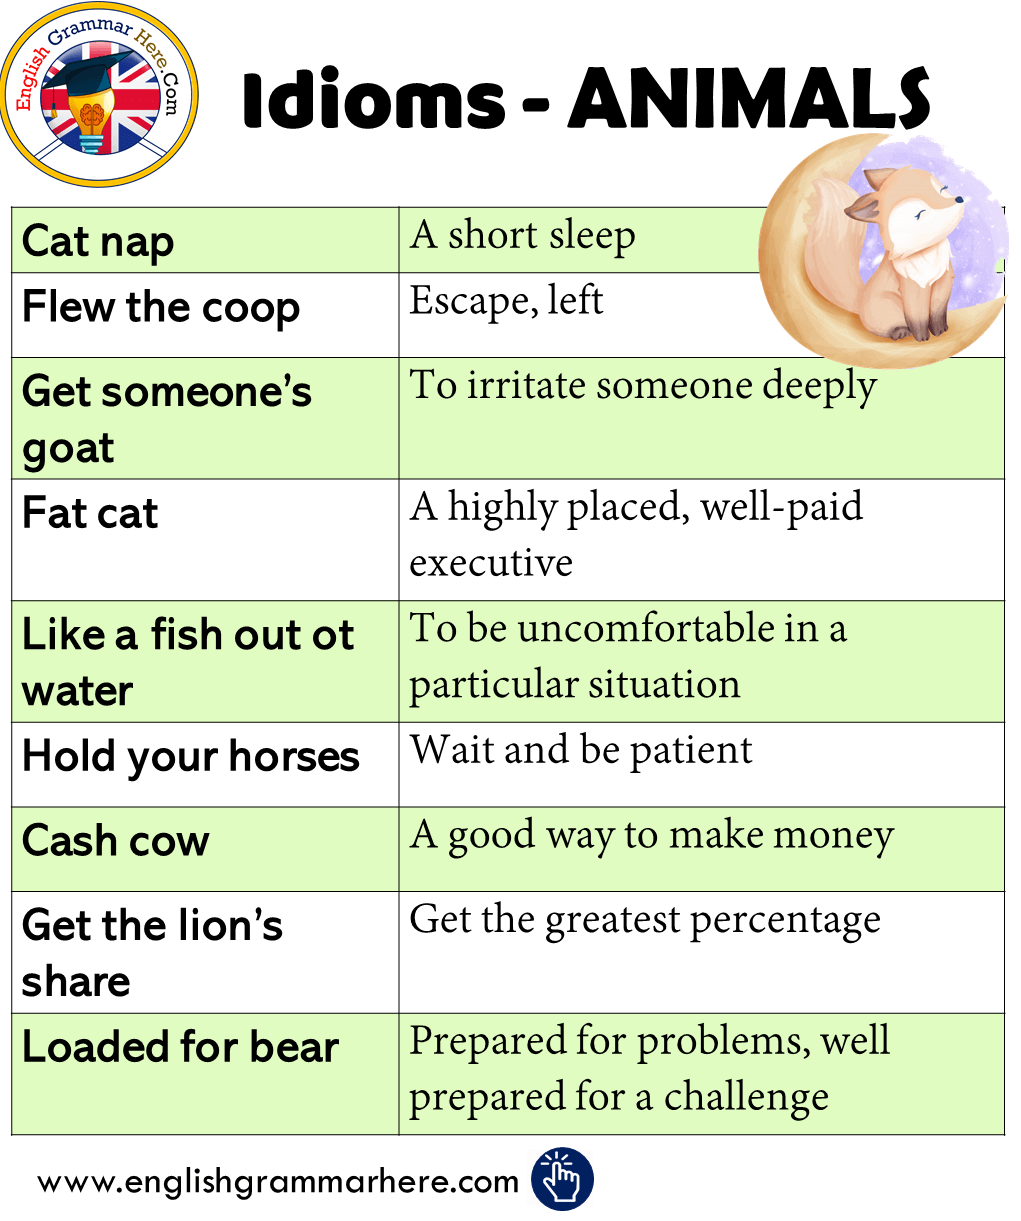 Idioms about ANIMALS in English